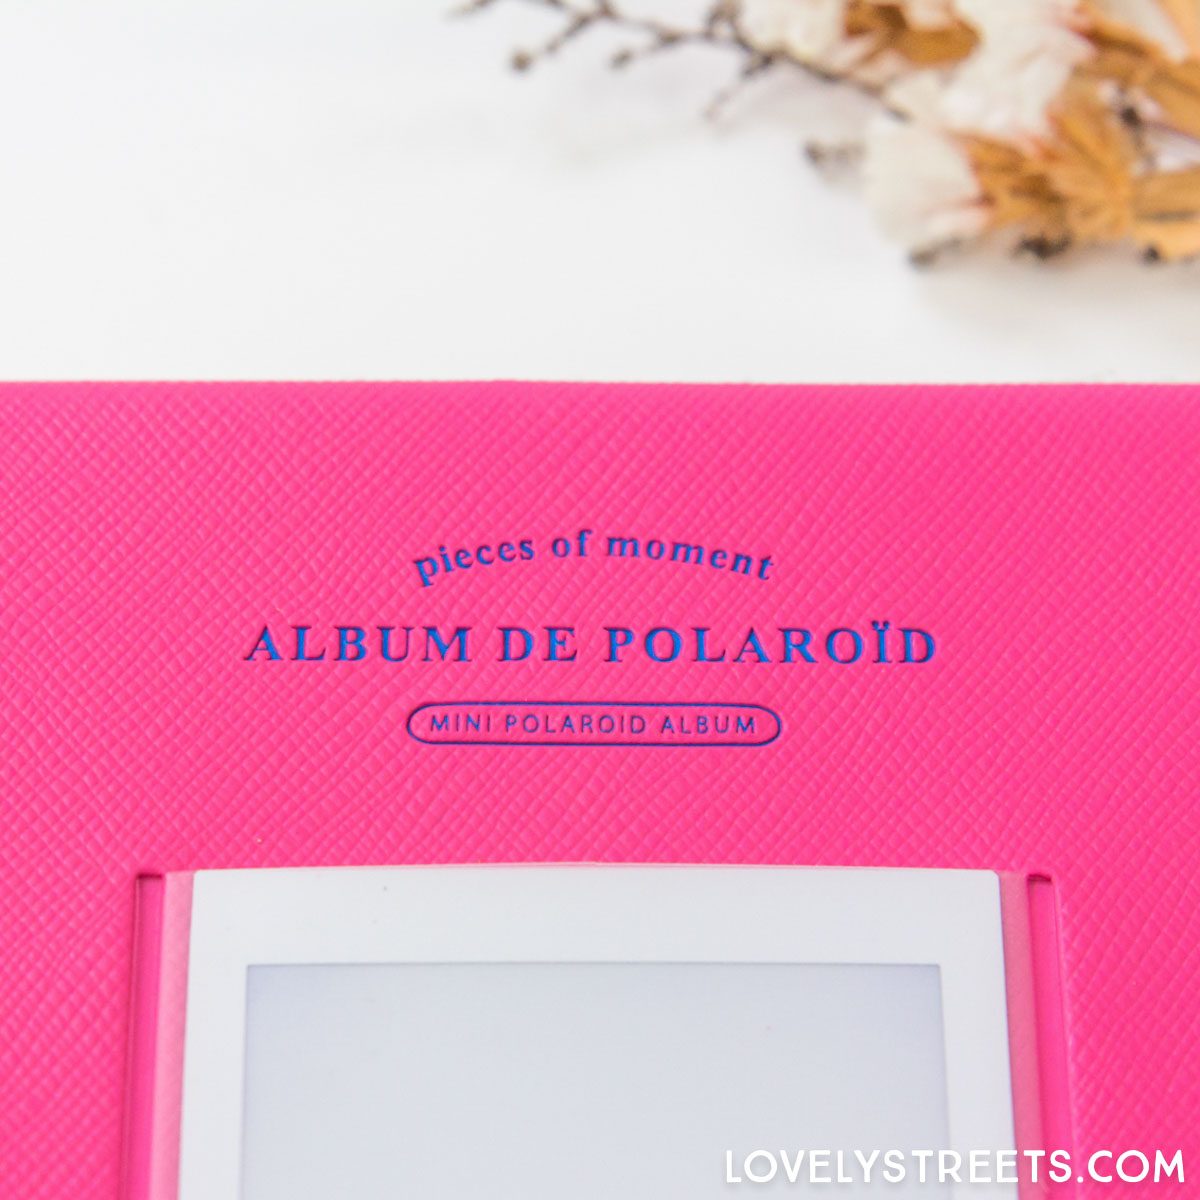 mrwonderful_7800_ROSEPINK_album-fotos-polaroid-mini-fucsia-7